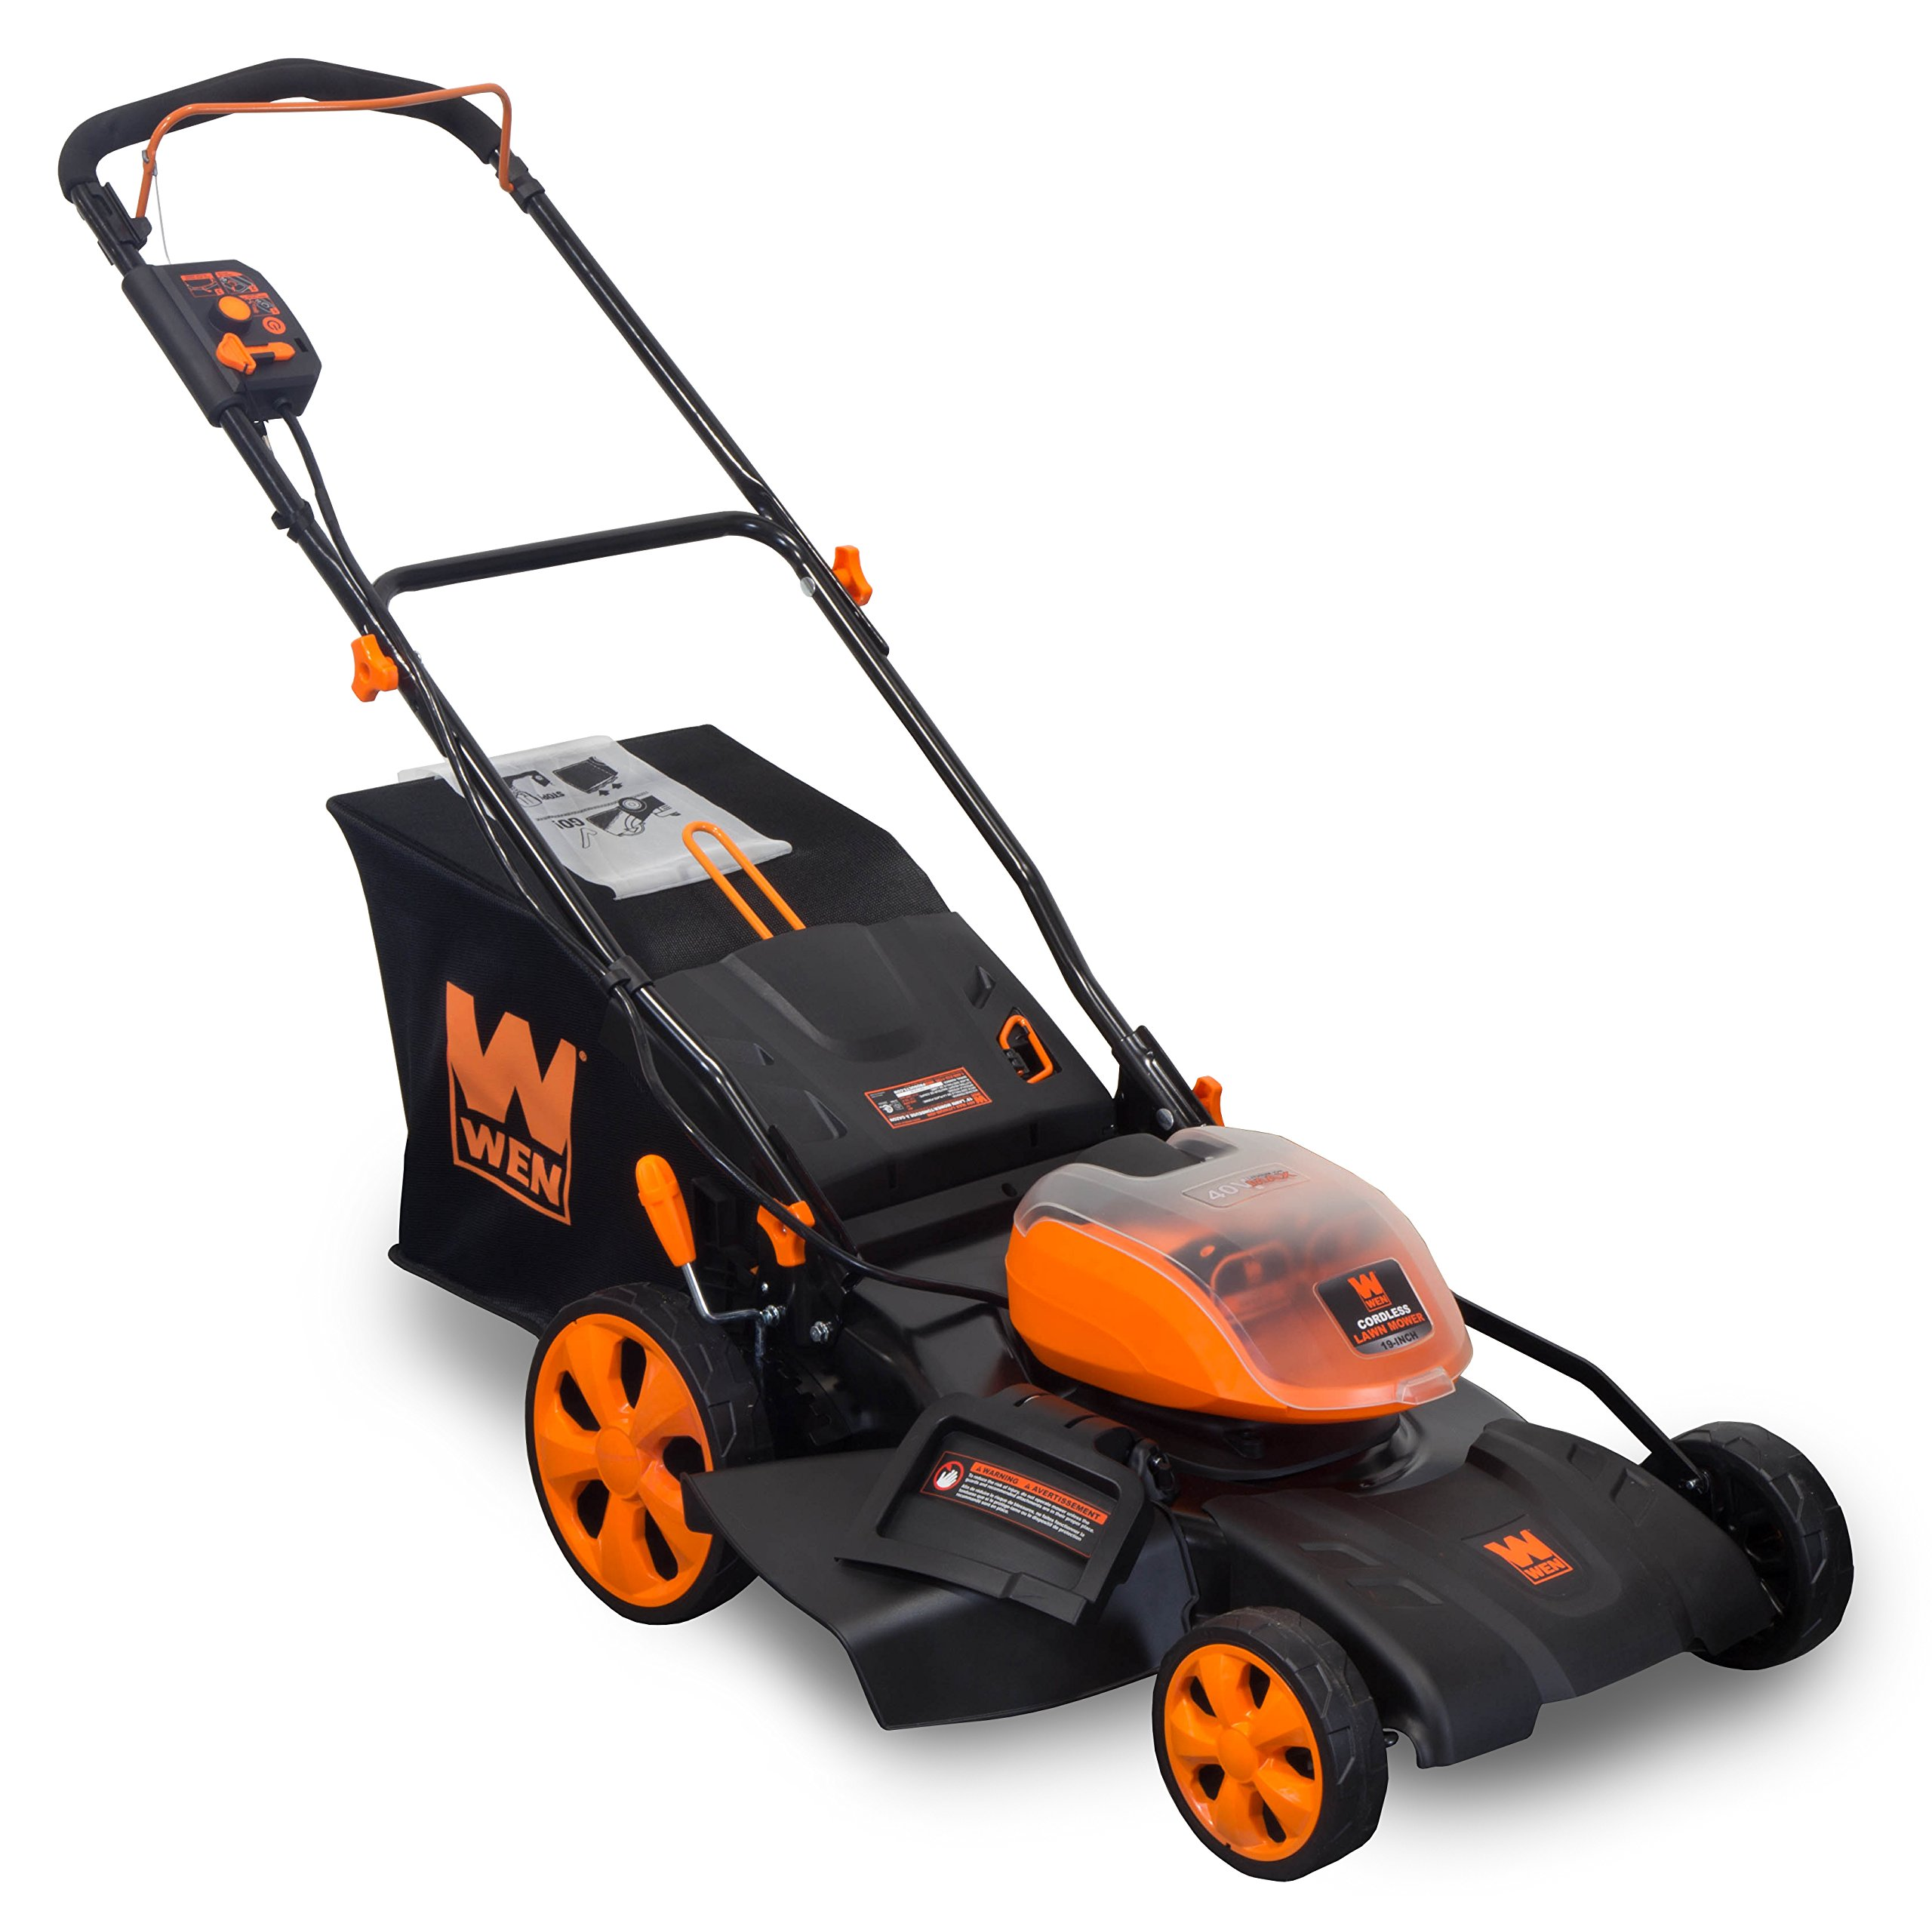 WEN 40439 40V Max Lithium Ion 19-Inch Cordless 3-in-1 Electric Lawn Mower with Two Batteries, 16-Gallon Bag and Charger 2 Includes one 4 amp-hour battery, one 2 amp-hour battery, one 16-gallon bag, one charger, and a two-year warranty Versatile 19-inch steel deck allows users to mulch, bag or use the side discharge door Adjust the cutting height between six different stops ranging from 1.5 to 4 inches